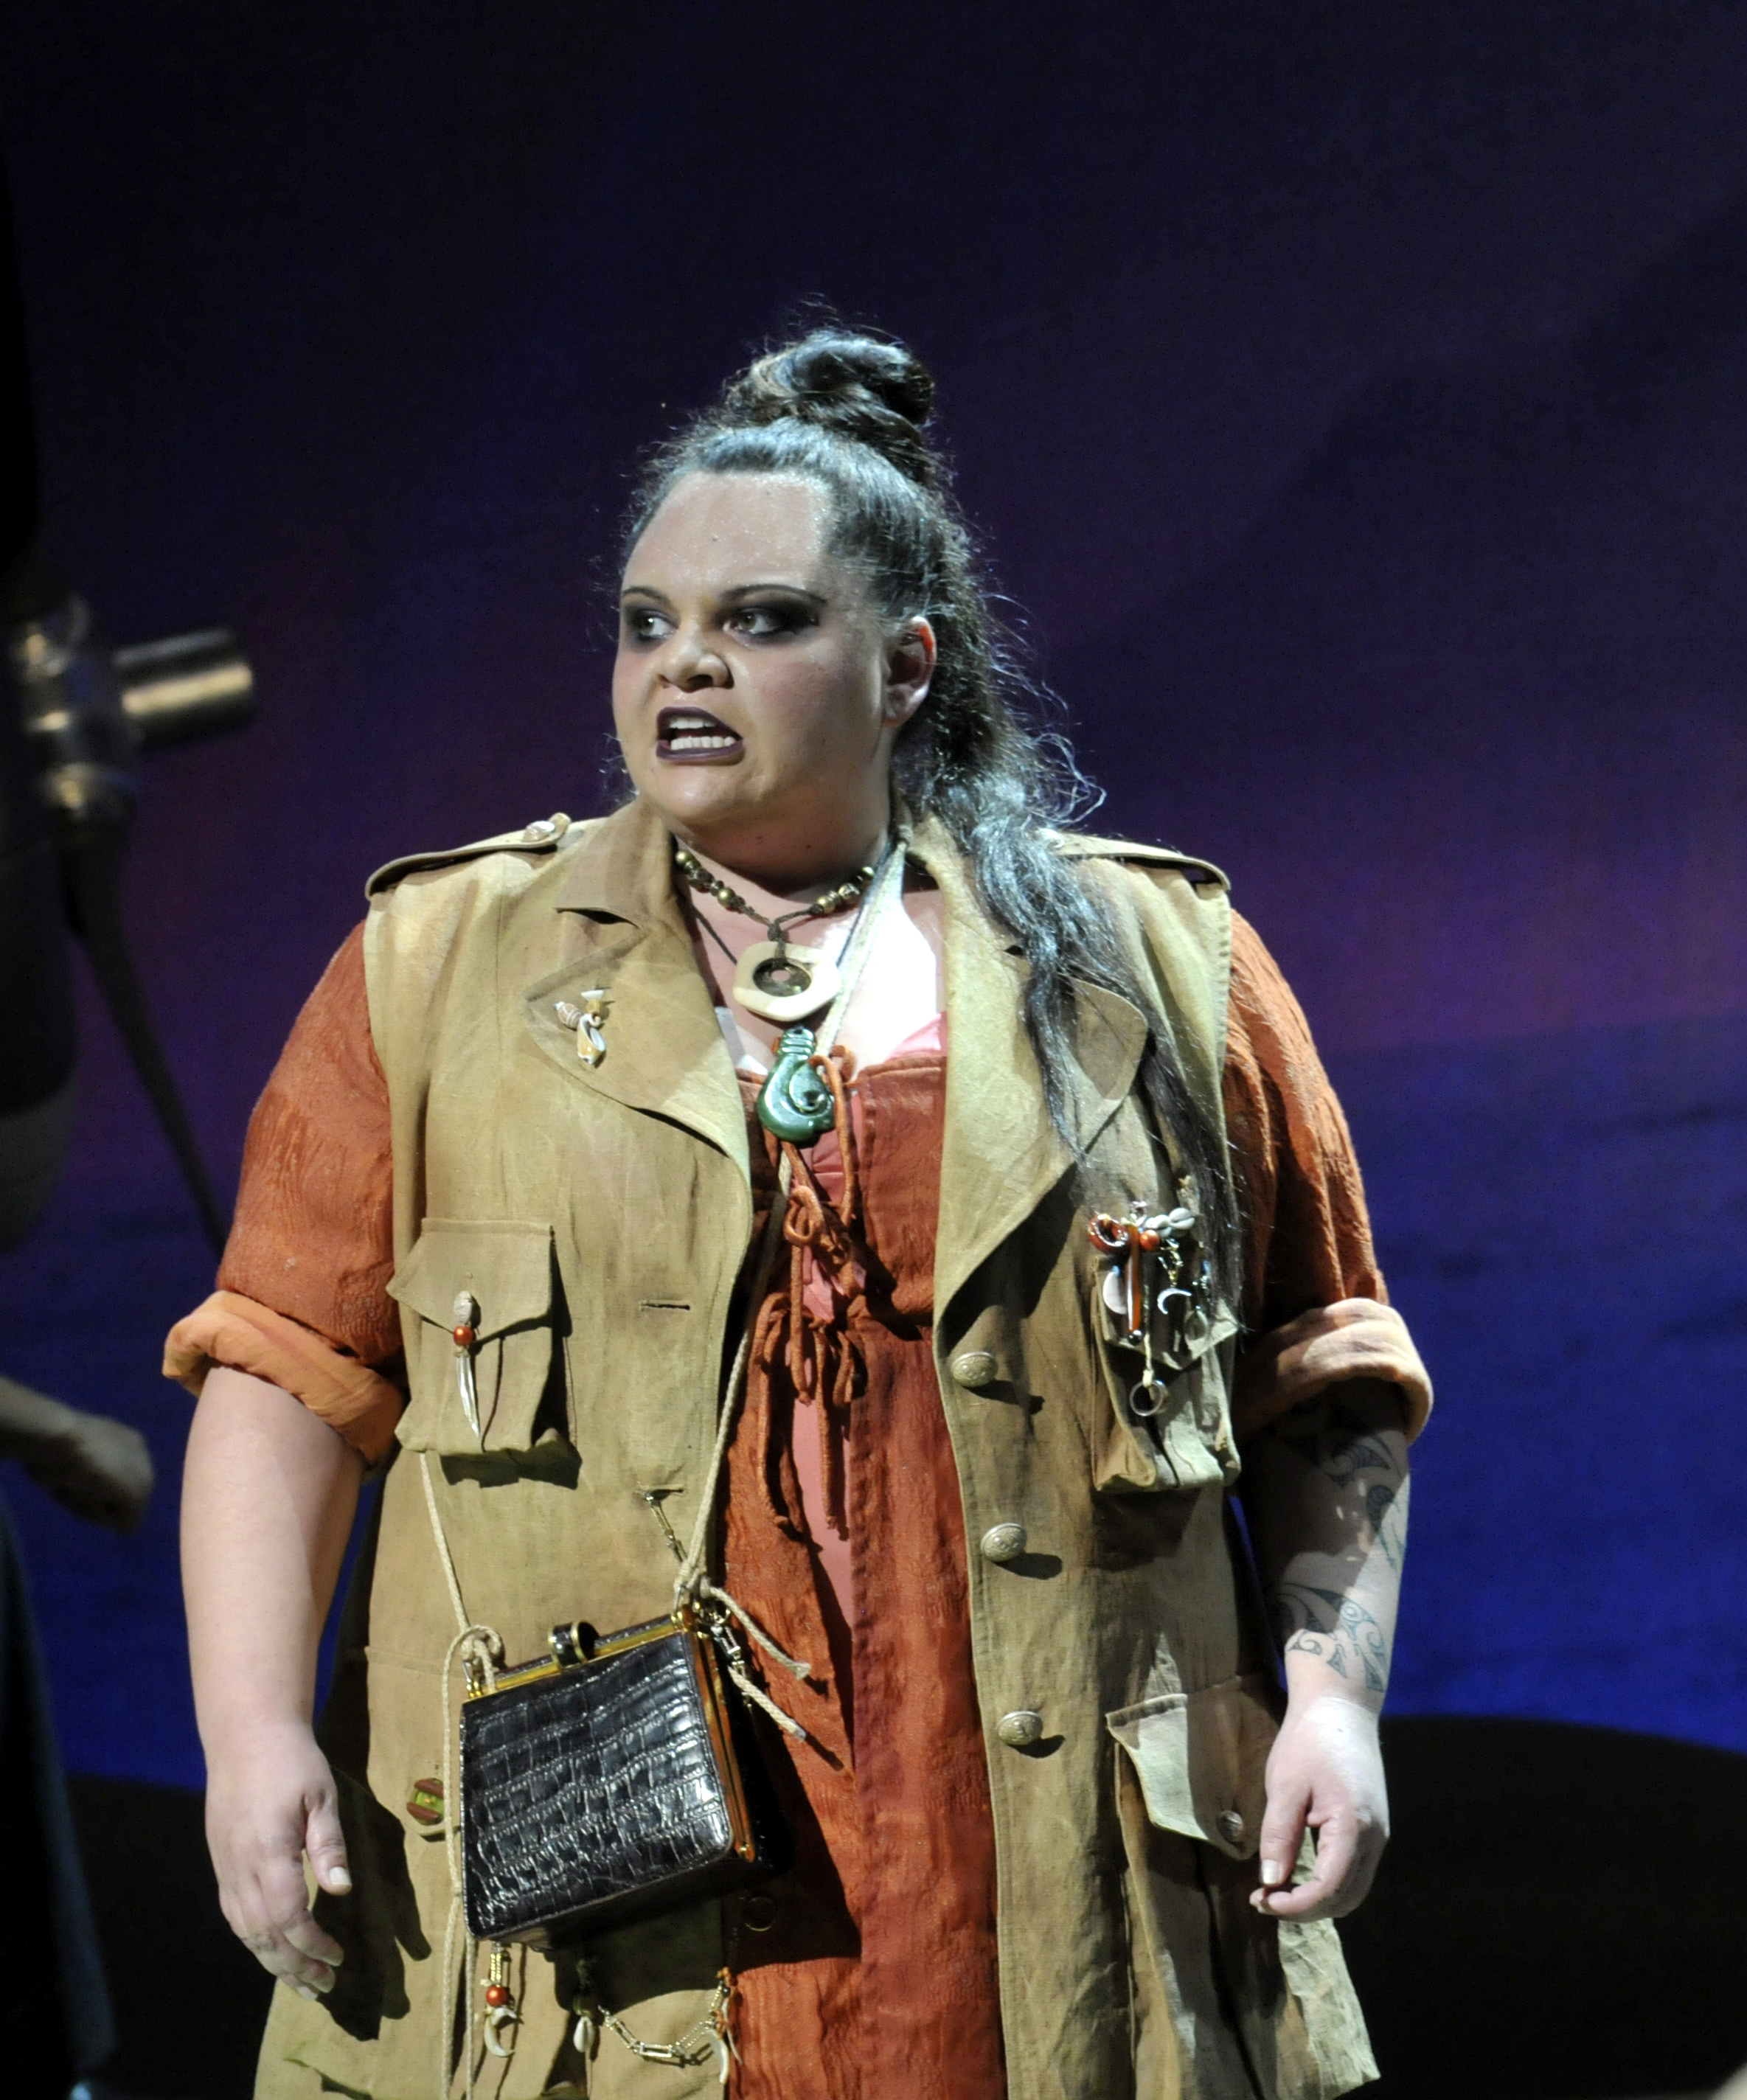 Bloody Mary played by Keala Settle - photo by Peter Coombs